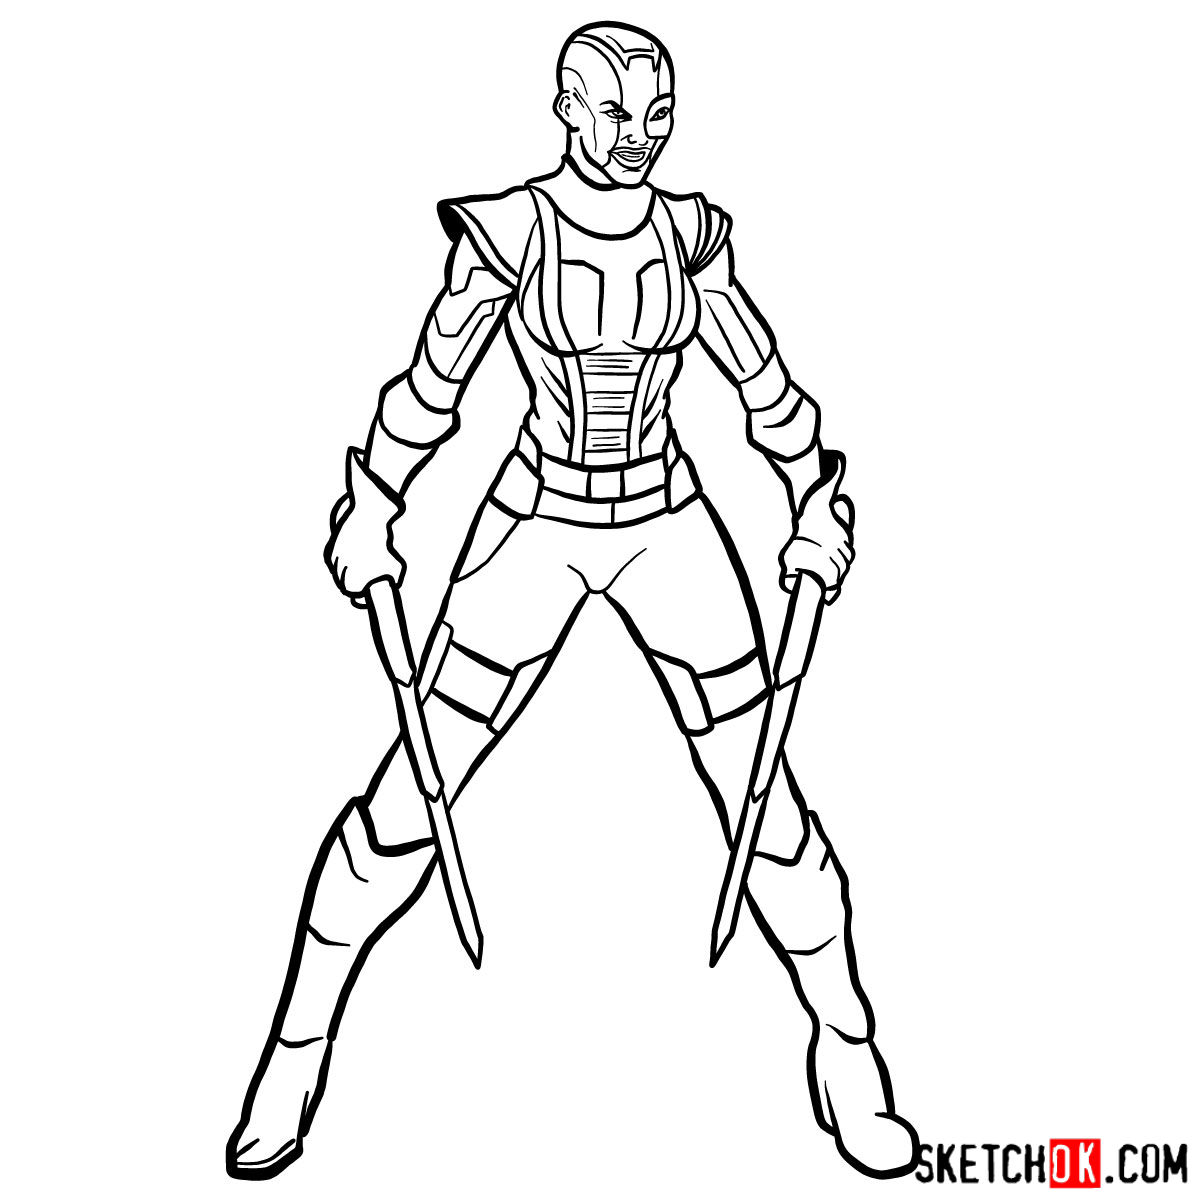 How to draw Nebula from Guardians of the Galaxy - step 17